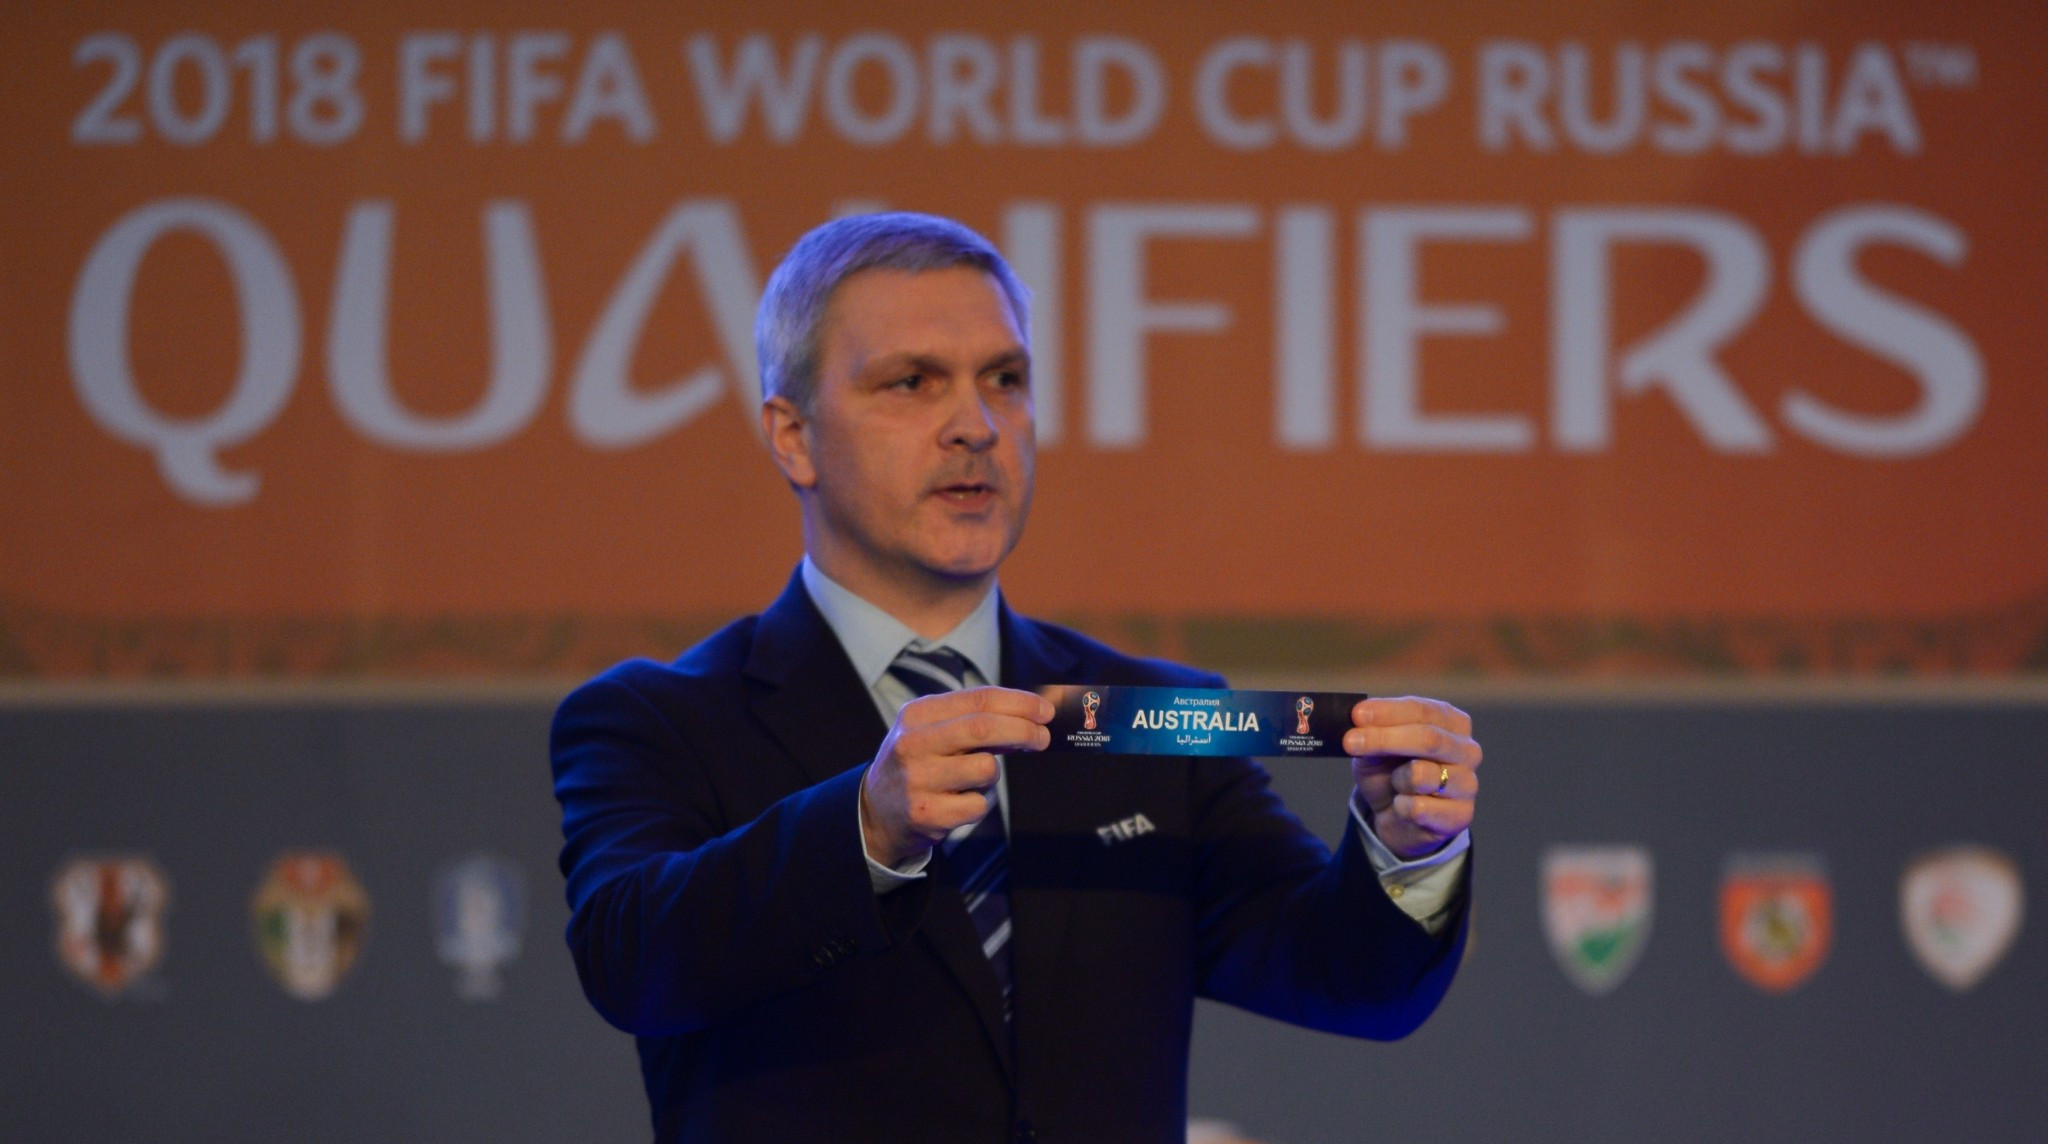 Asian Cup champions Australia to cover new ground in World Cup qualification bid